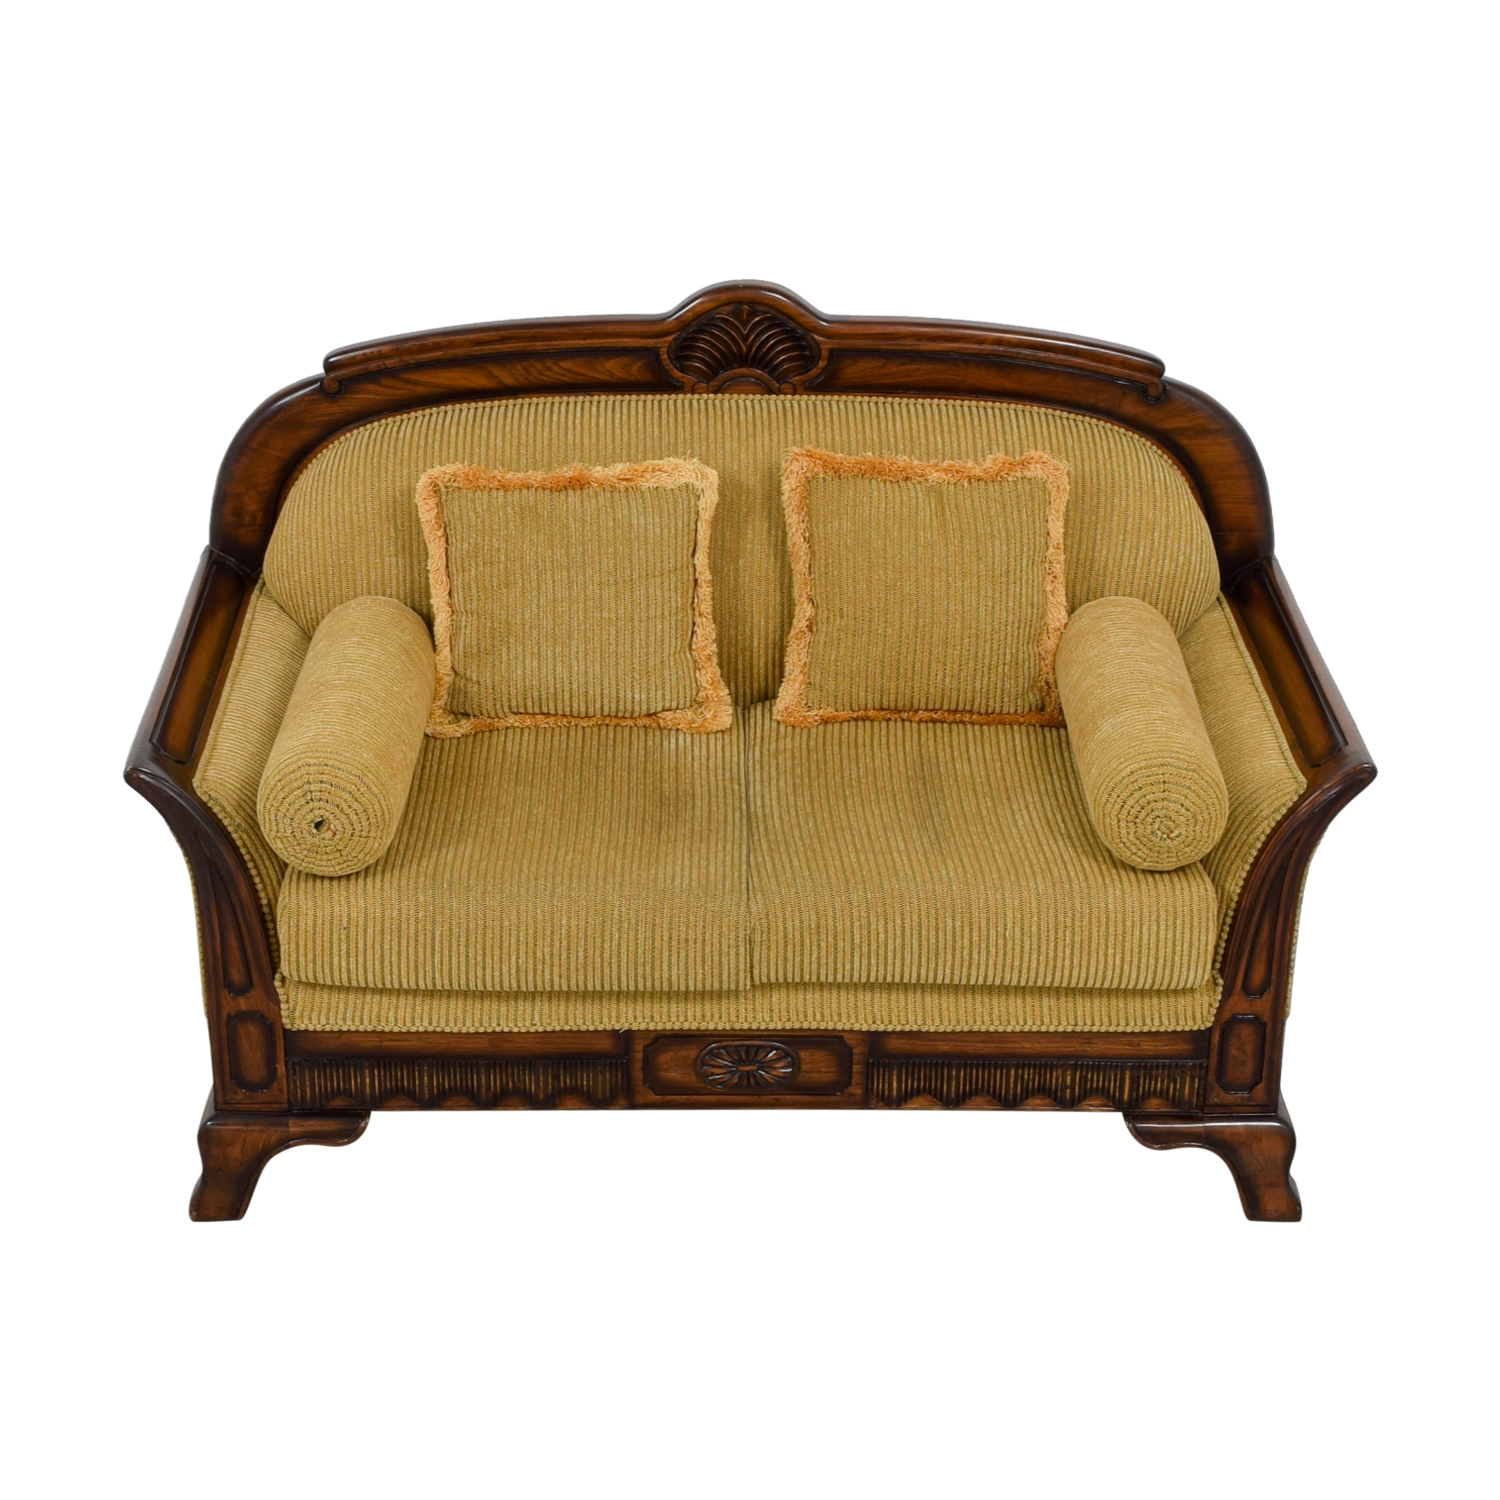 Striped Carved Wood Two Cushion Loveseat / Loveseats